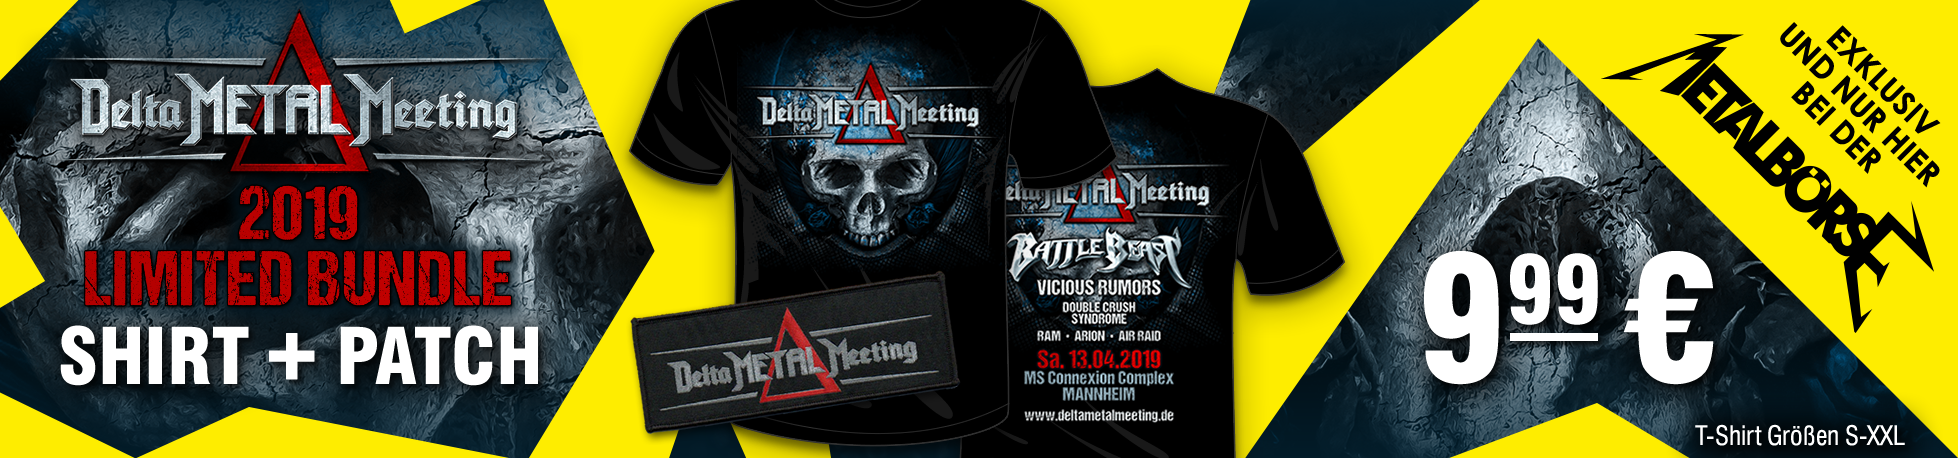 Delta Metal Meeting 2019